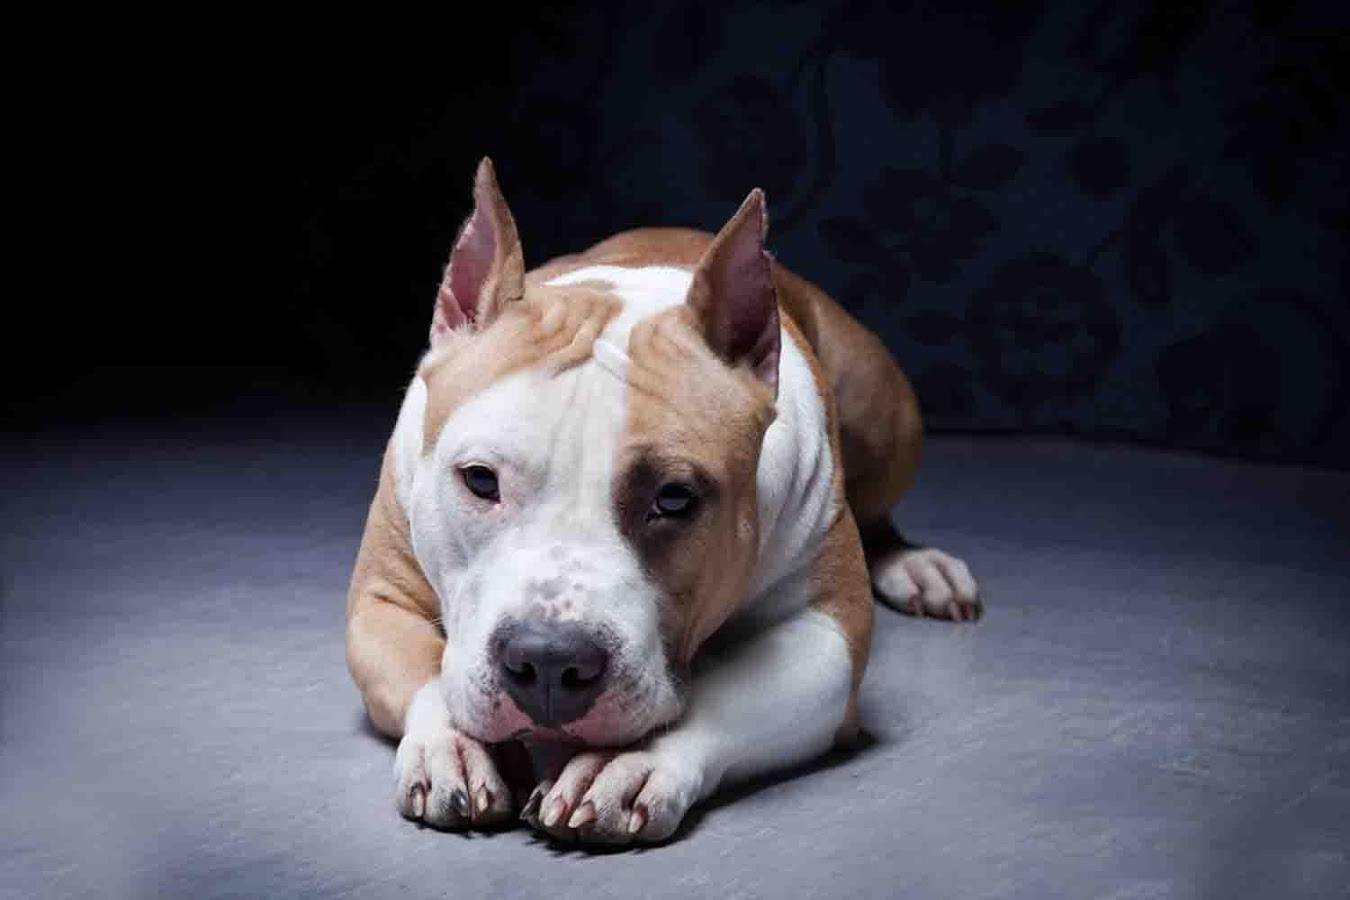 Puppy Pitbull Wallpaper - Android Apps on Google Play